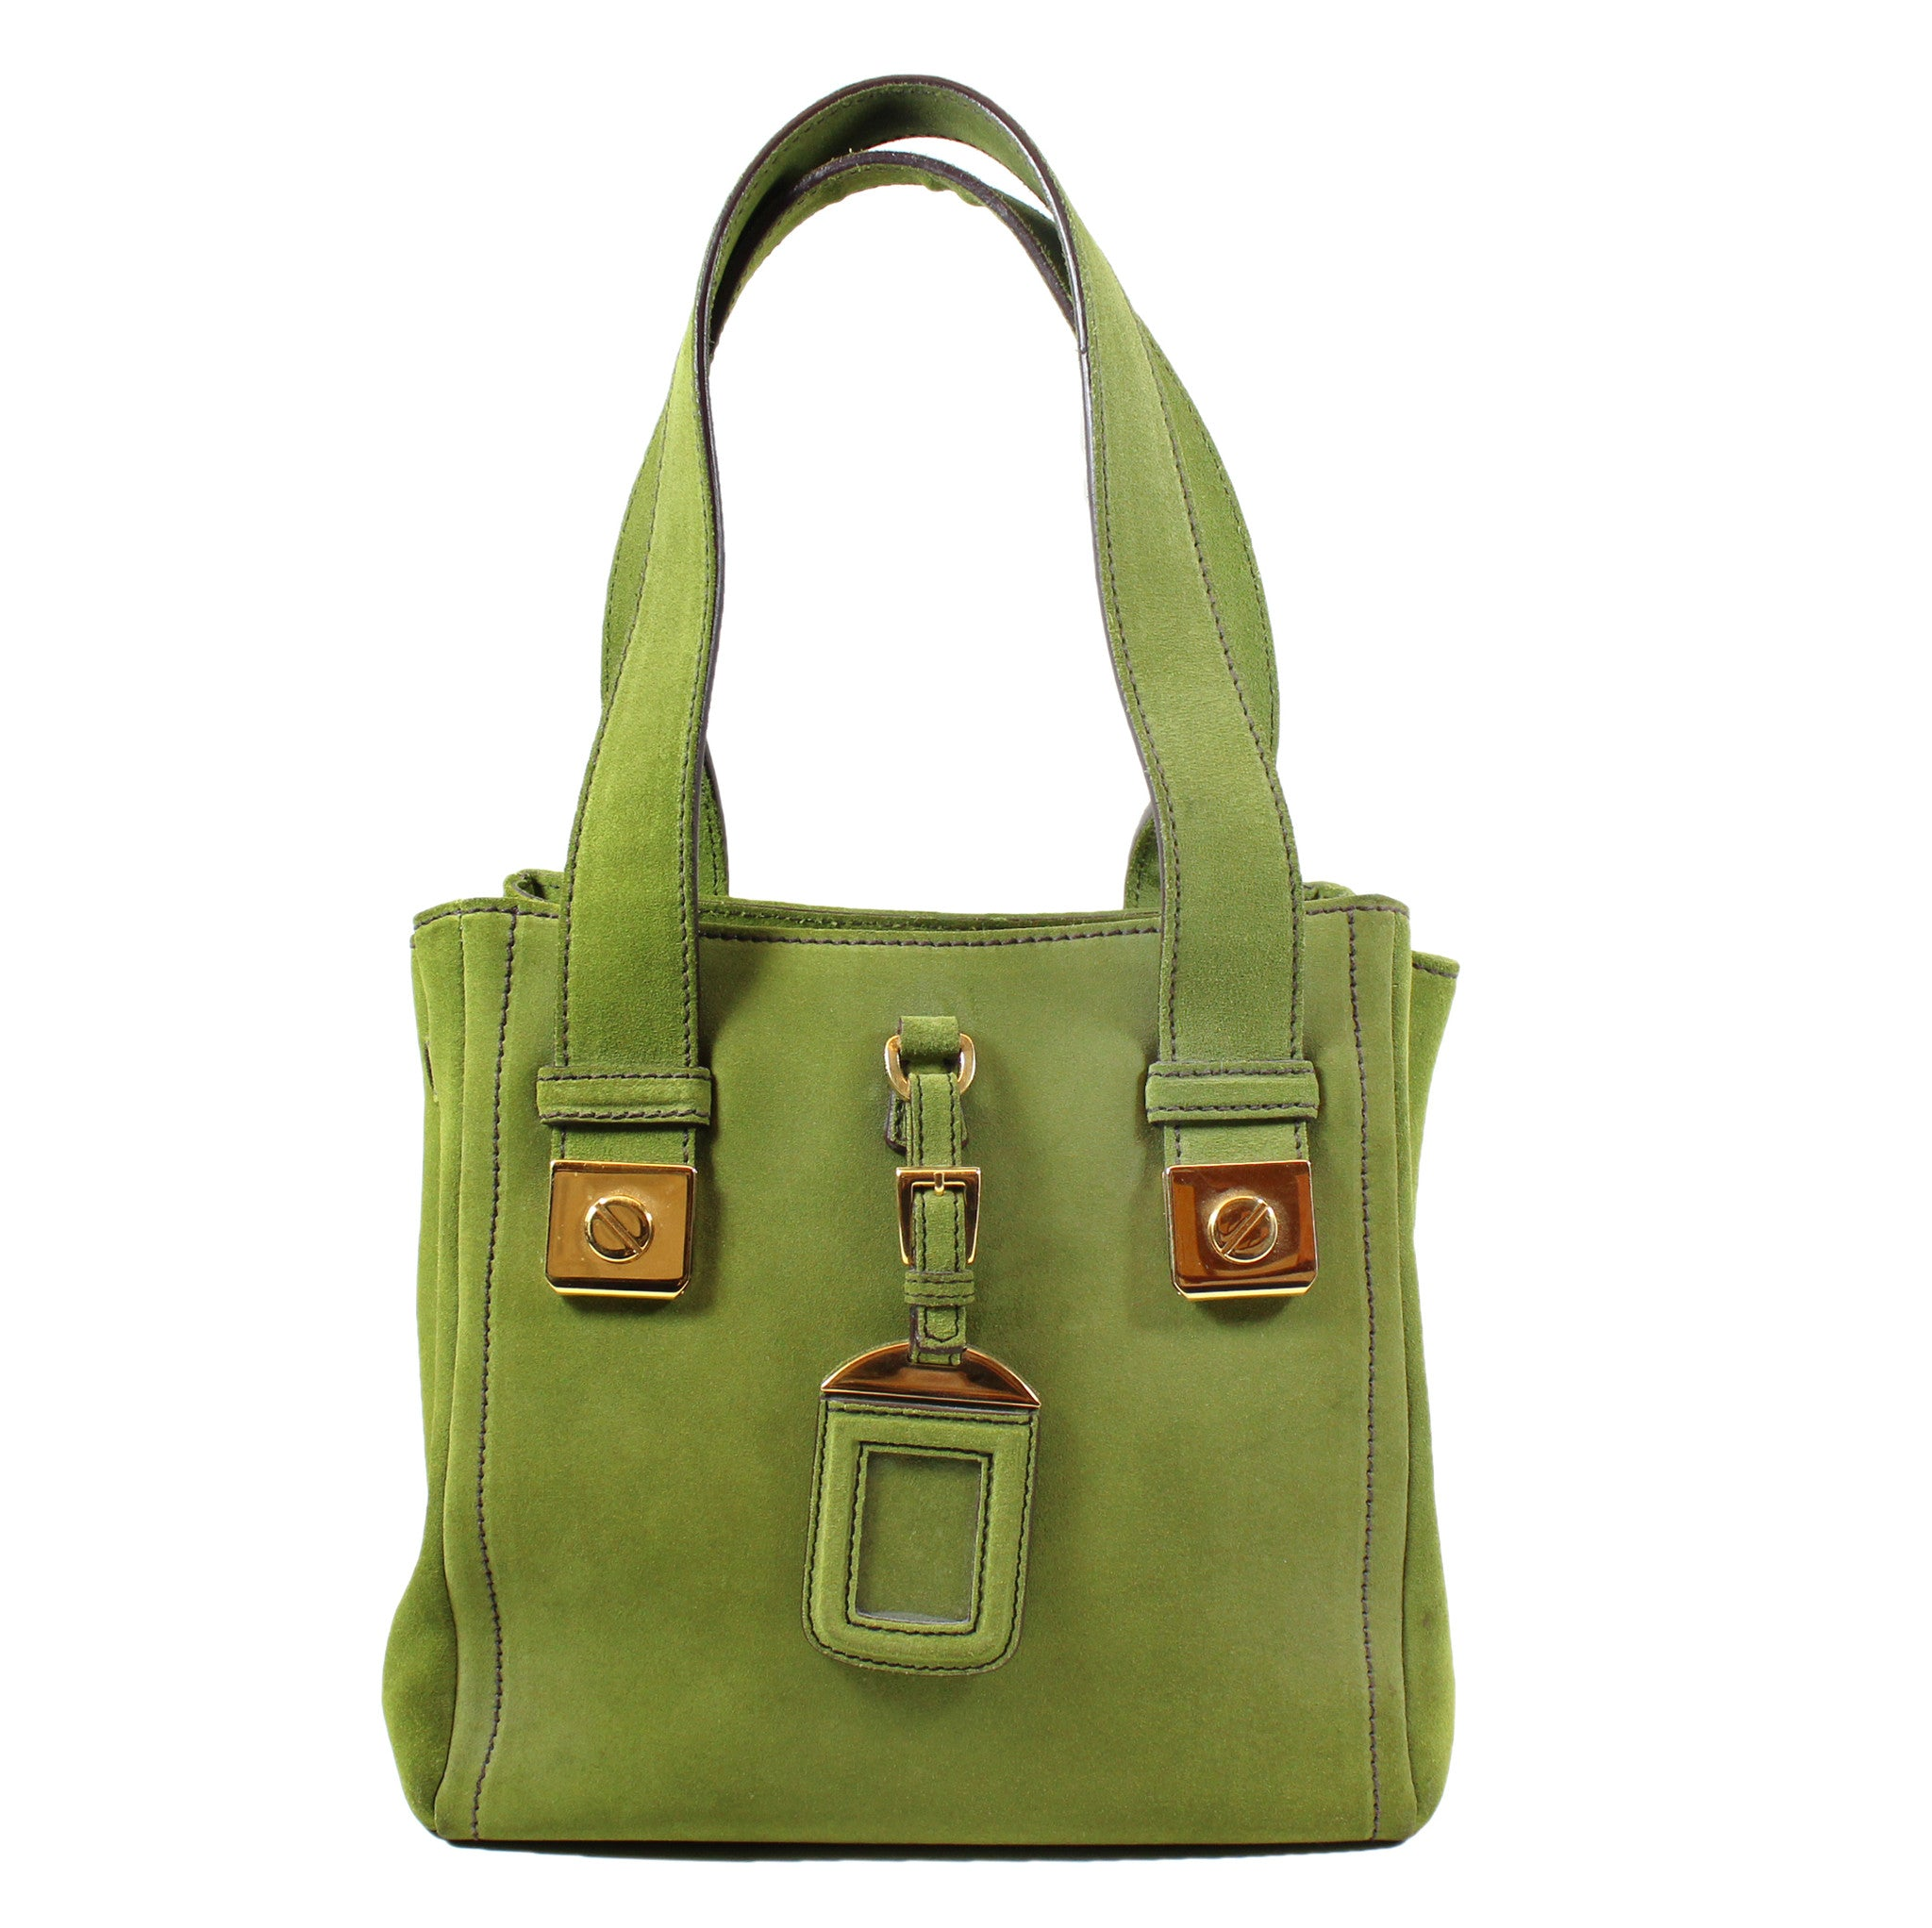 Prada Small Green Suede Tote